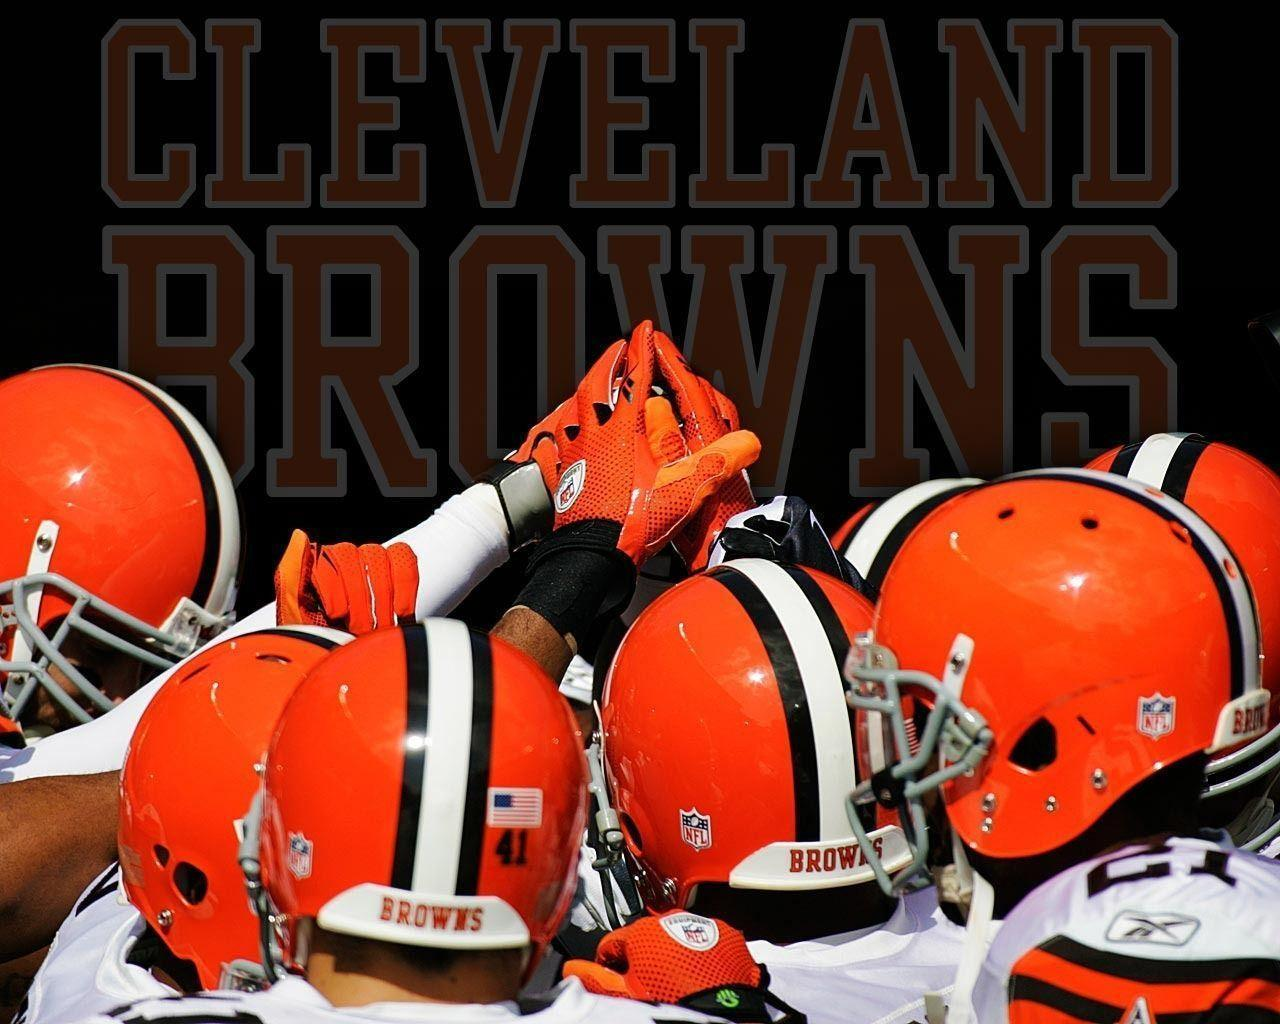 cleveland browns - photo #23